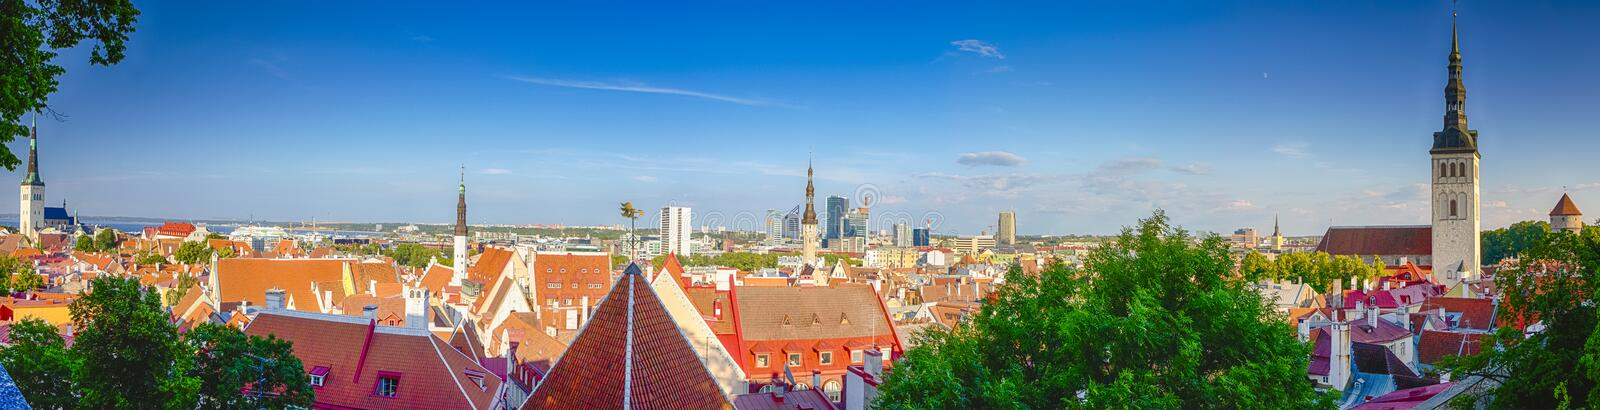 Panoramic Image of One of the Ancient European Cities Tallinn stock photography